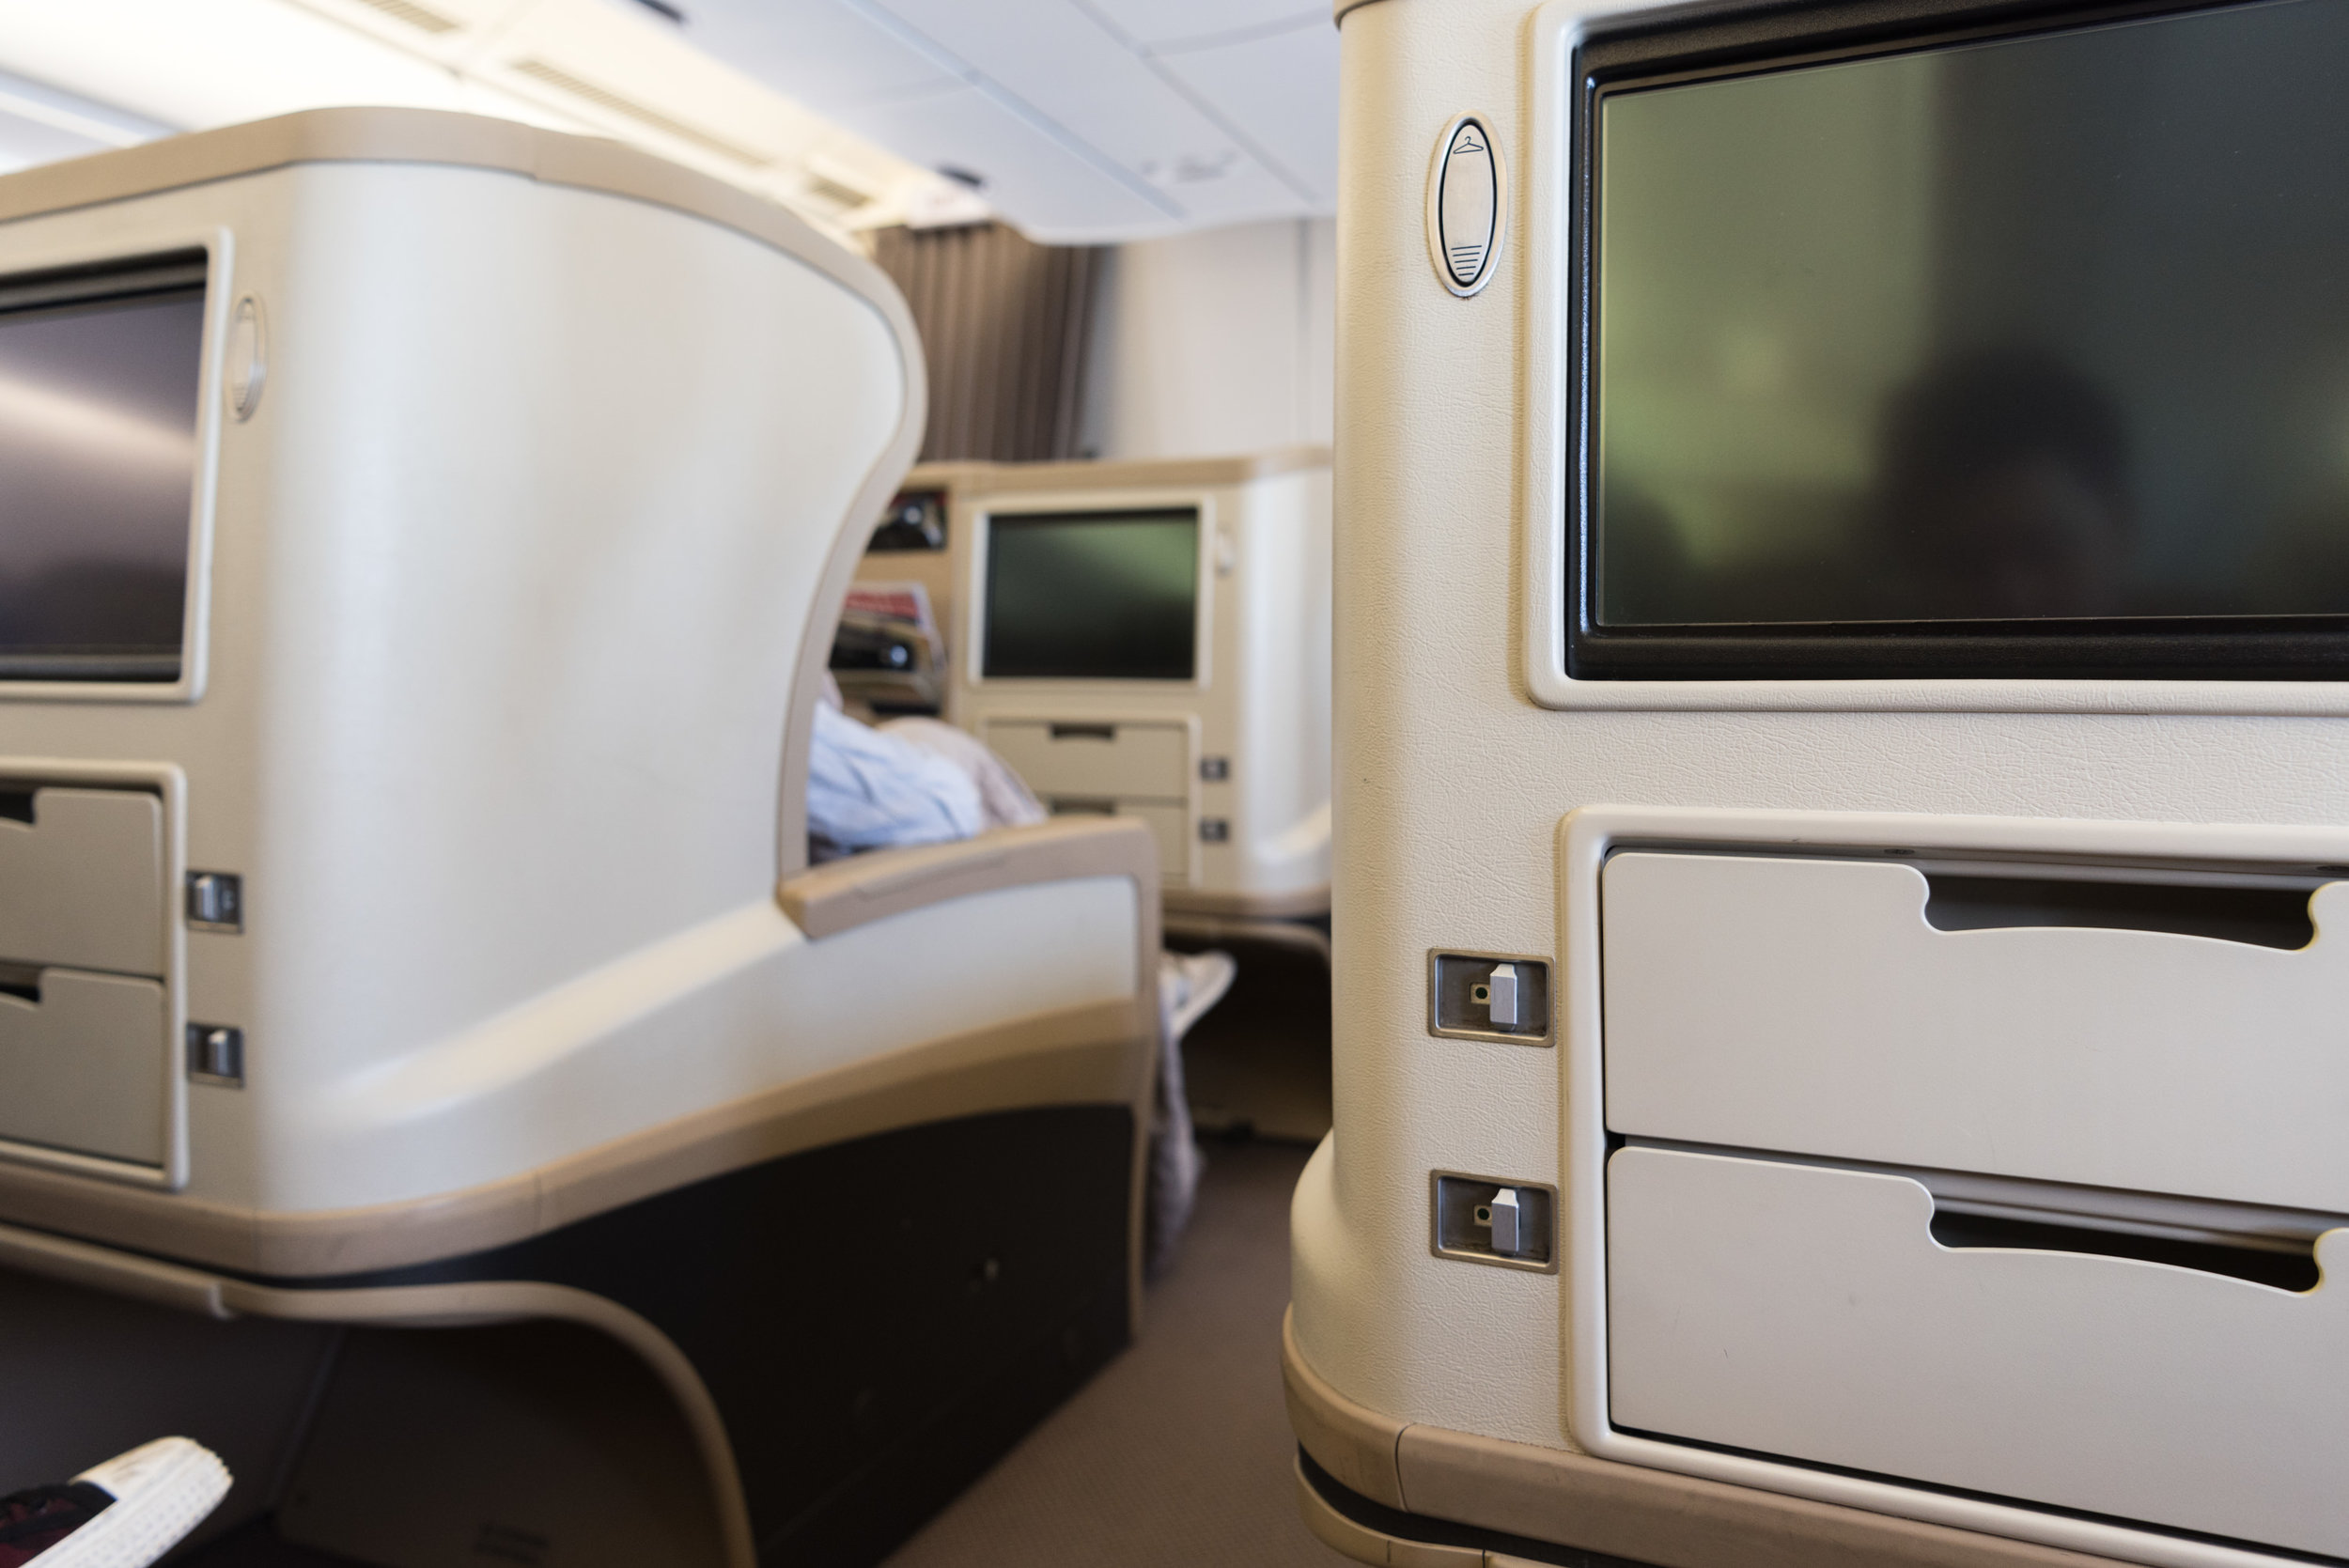 singapore airlines report On monday, one unhappy singapore airlines (sia) passenger had the  unpleasant experience of having his luggage tampered with during his.